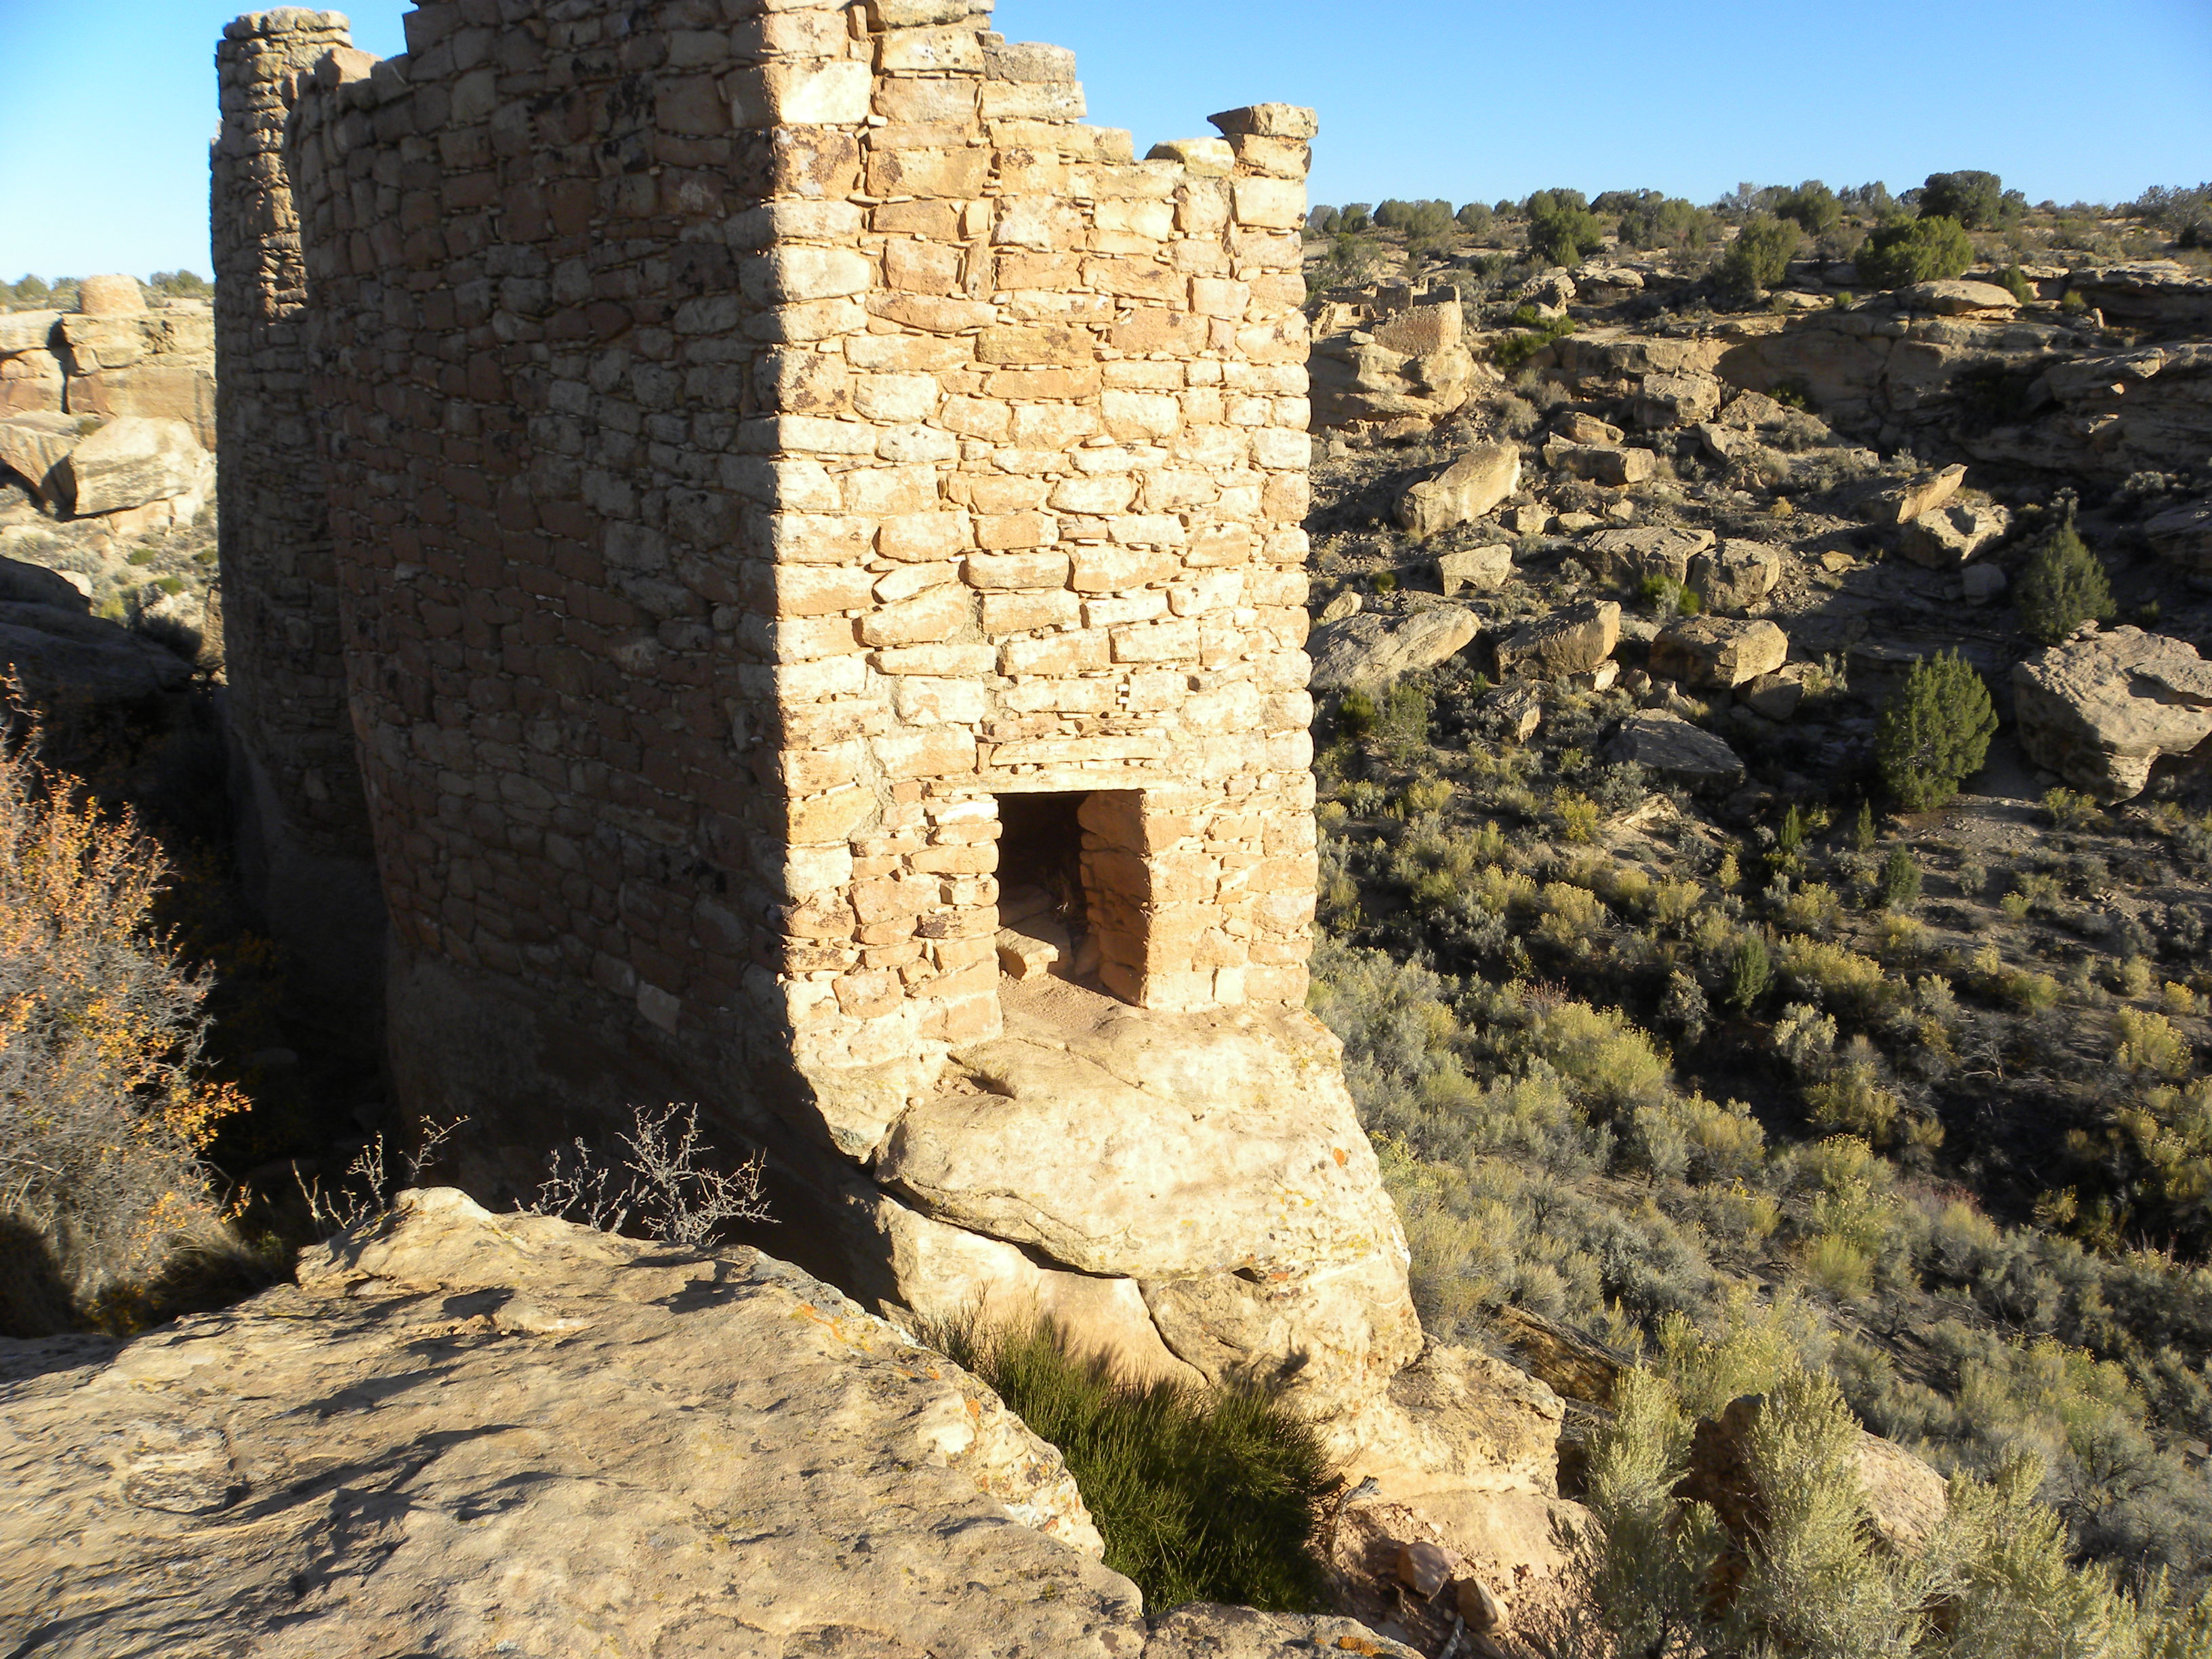 All buildings were built on rock ledges overlooking canyons